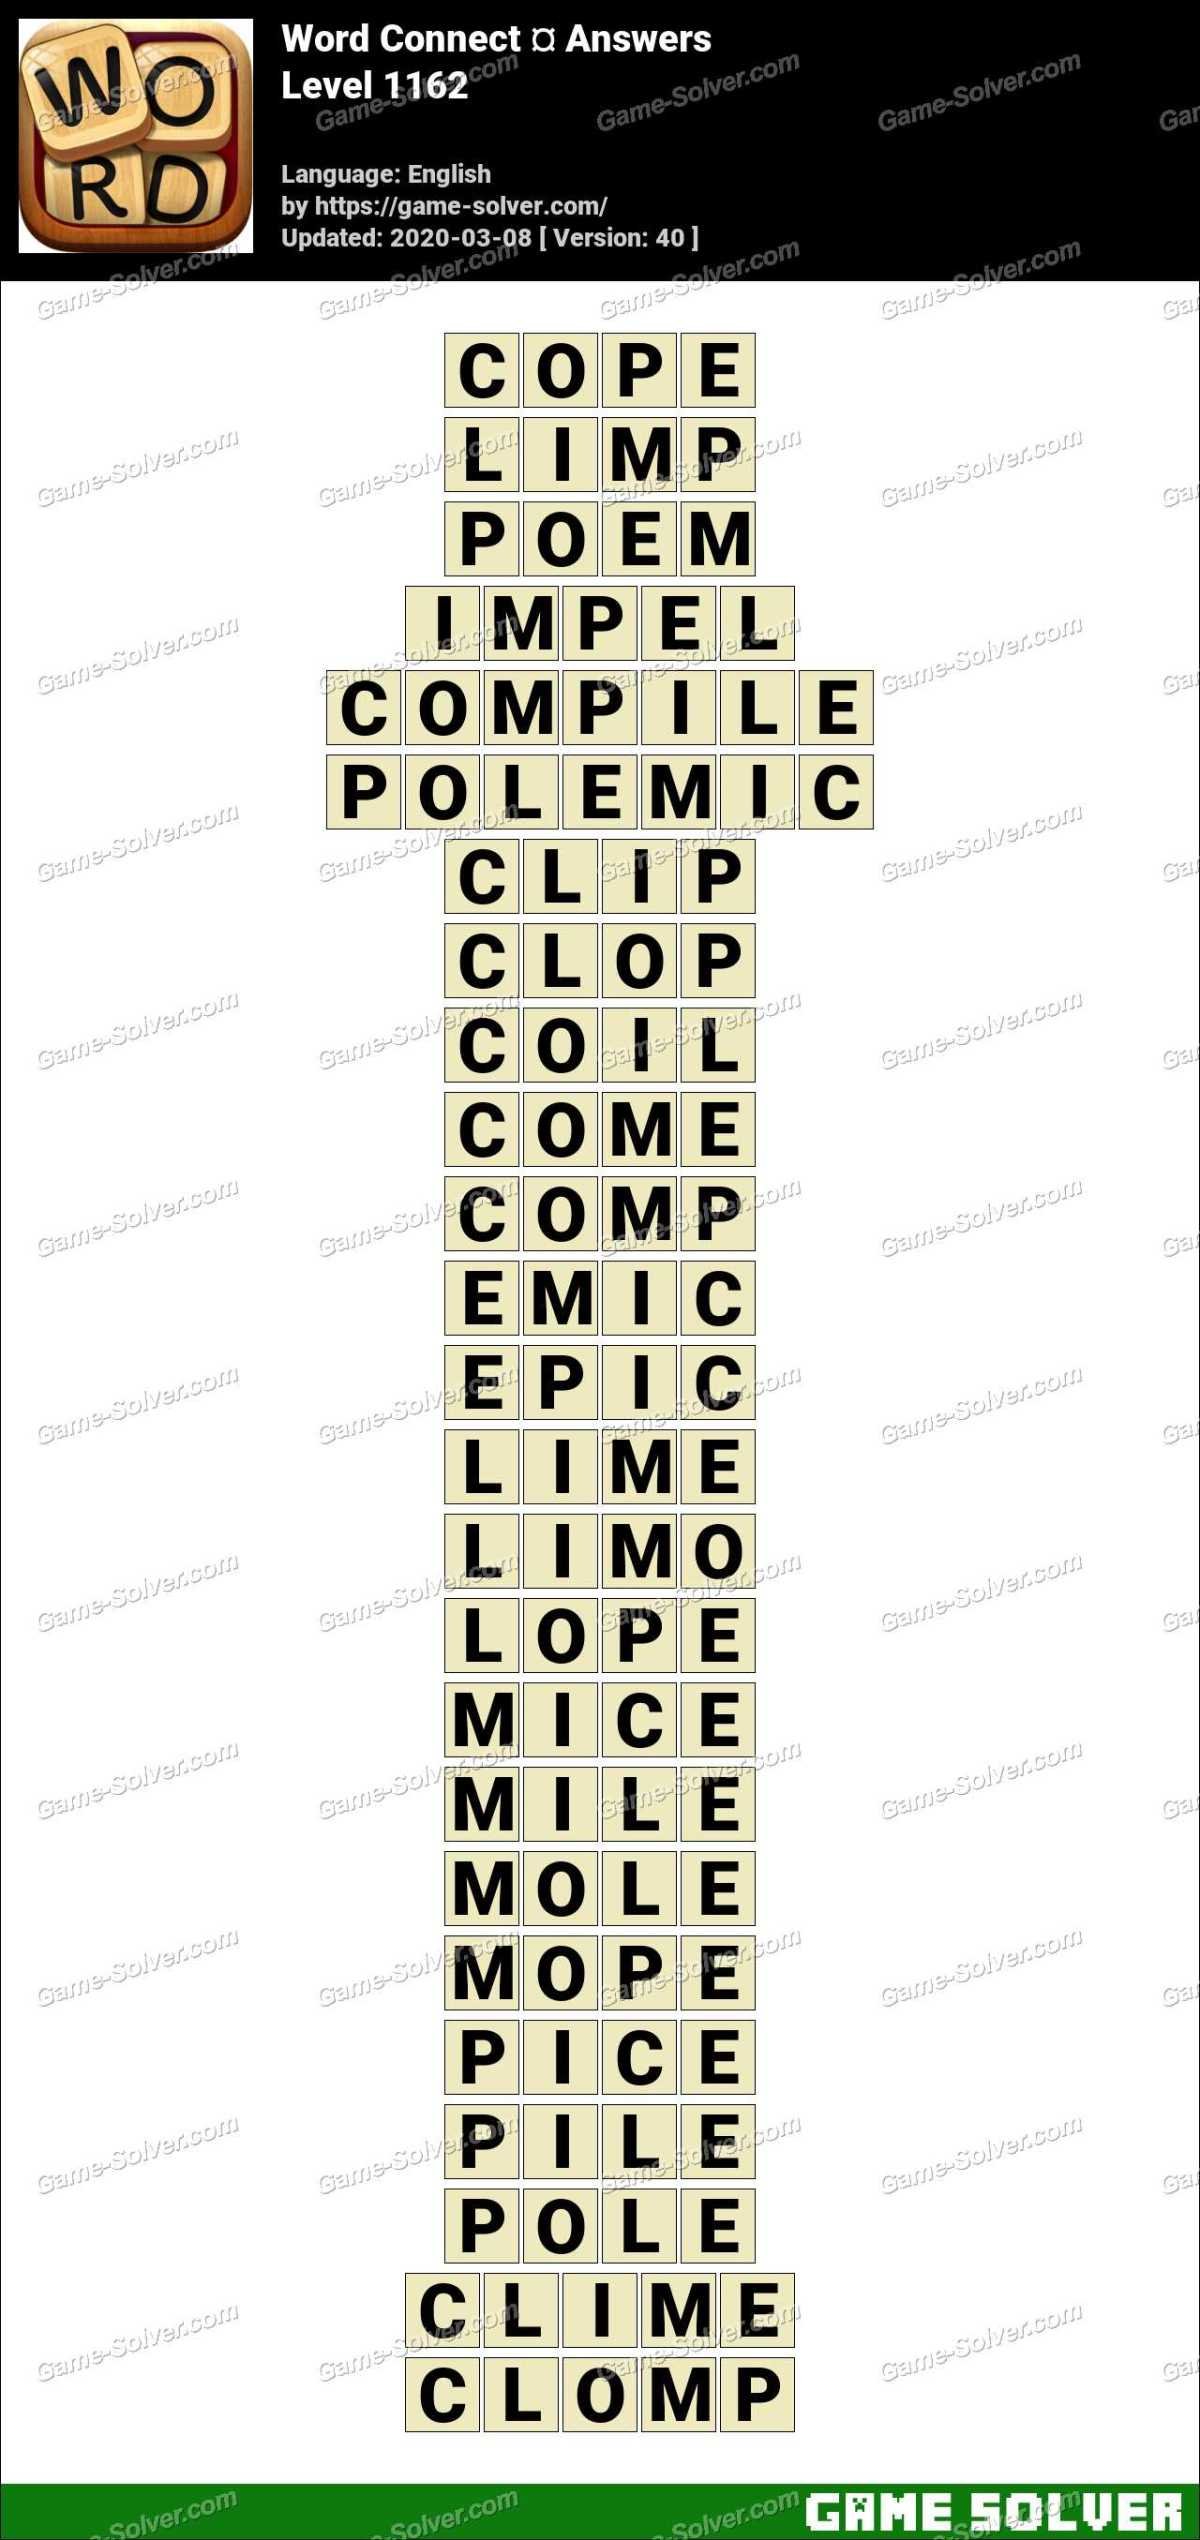 Word Connect Level 1162 Answers